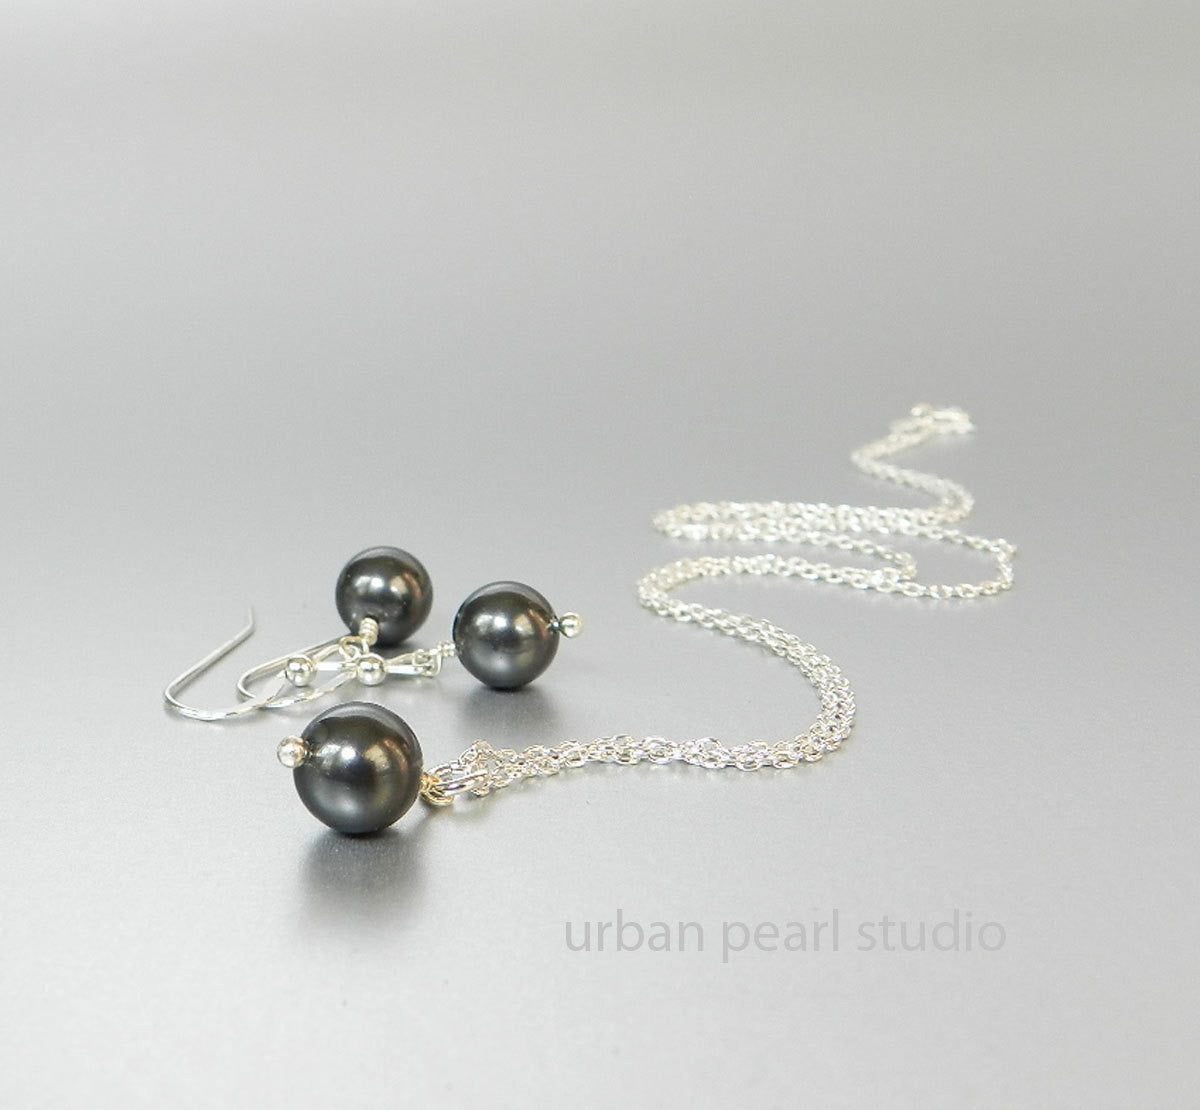 Single Black Pearl Drop Necklace Earrings Set Bridesmaids Gifts